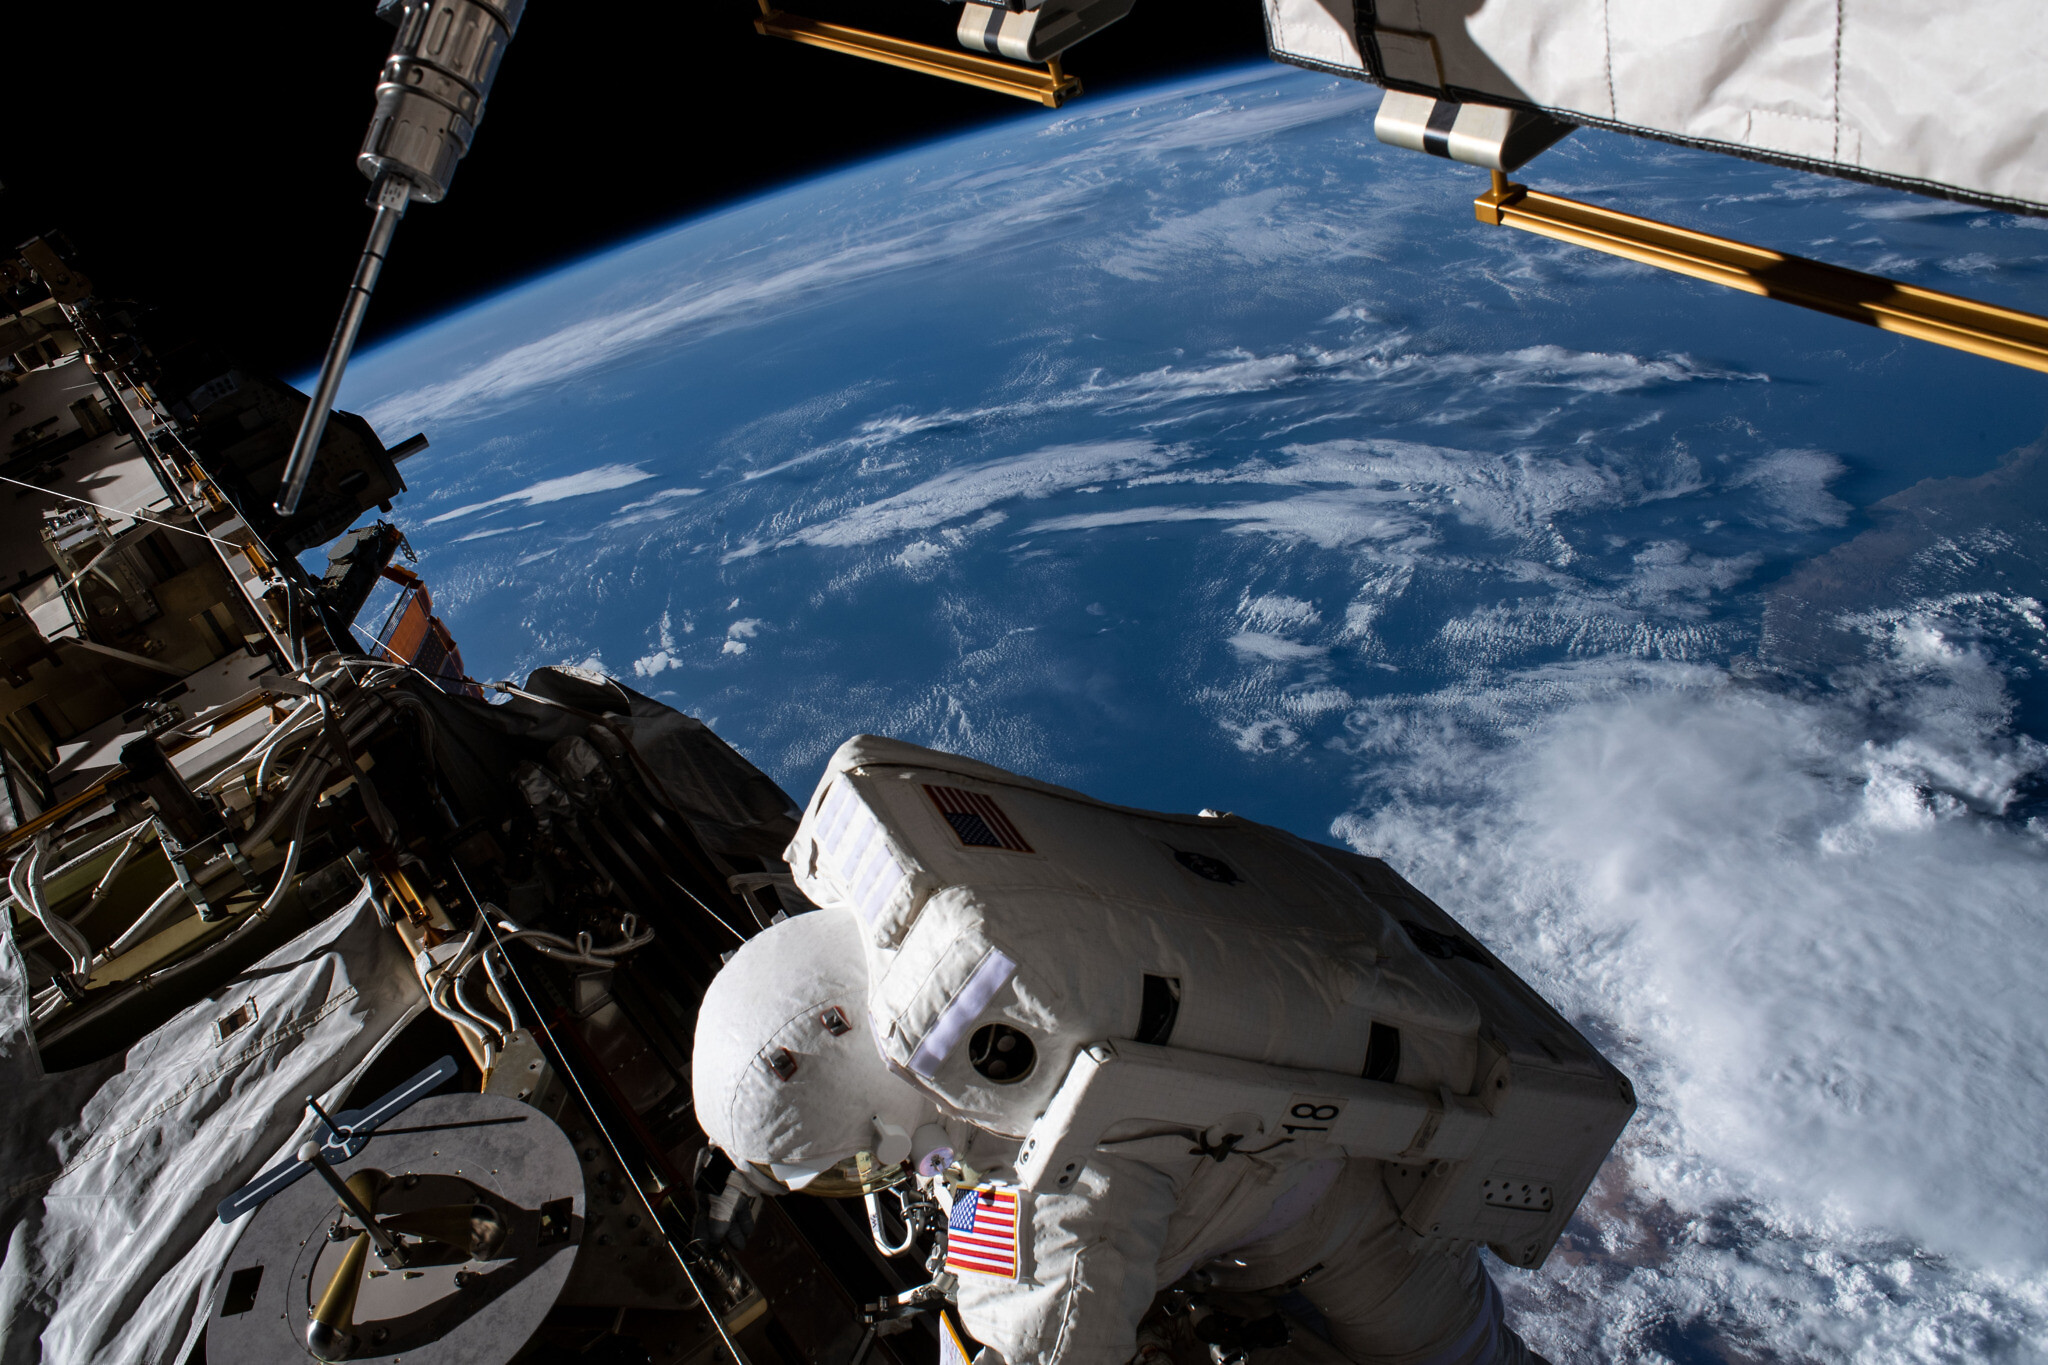 Illustrative: NASA astronaut Jessica Meir on a space walk outside the ISS, with the earth in the background. (NASA)